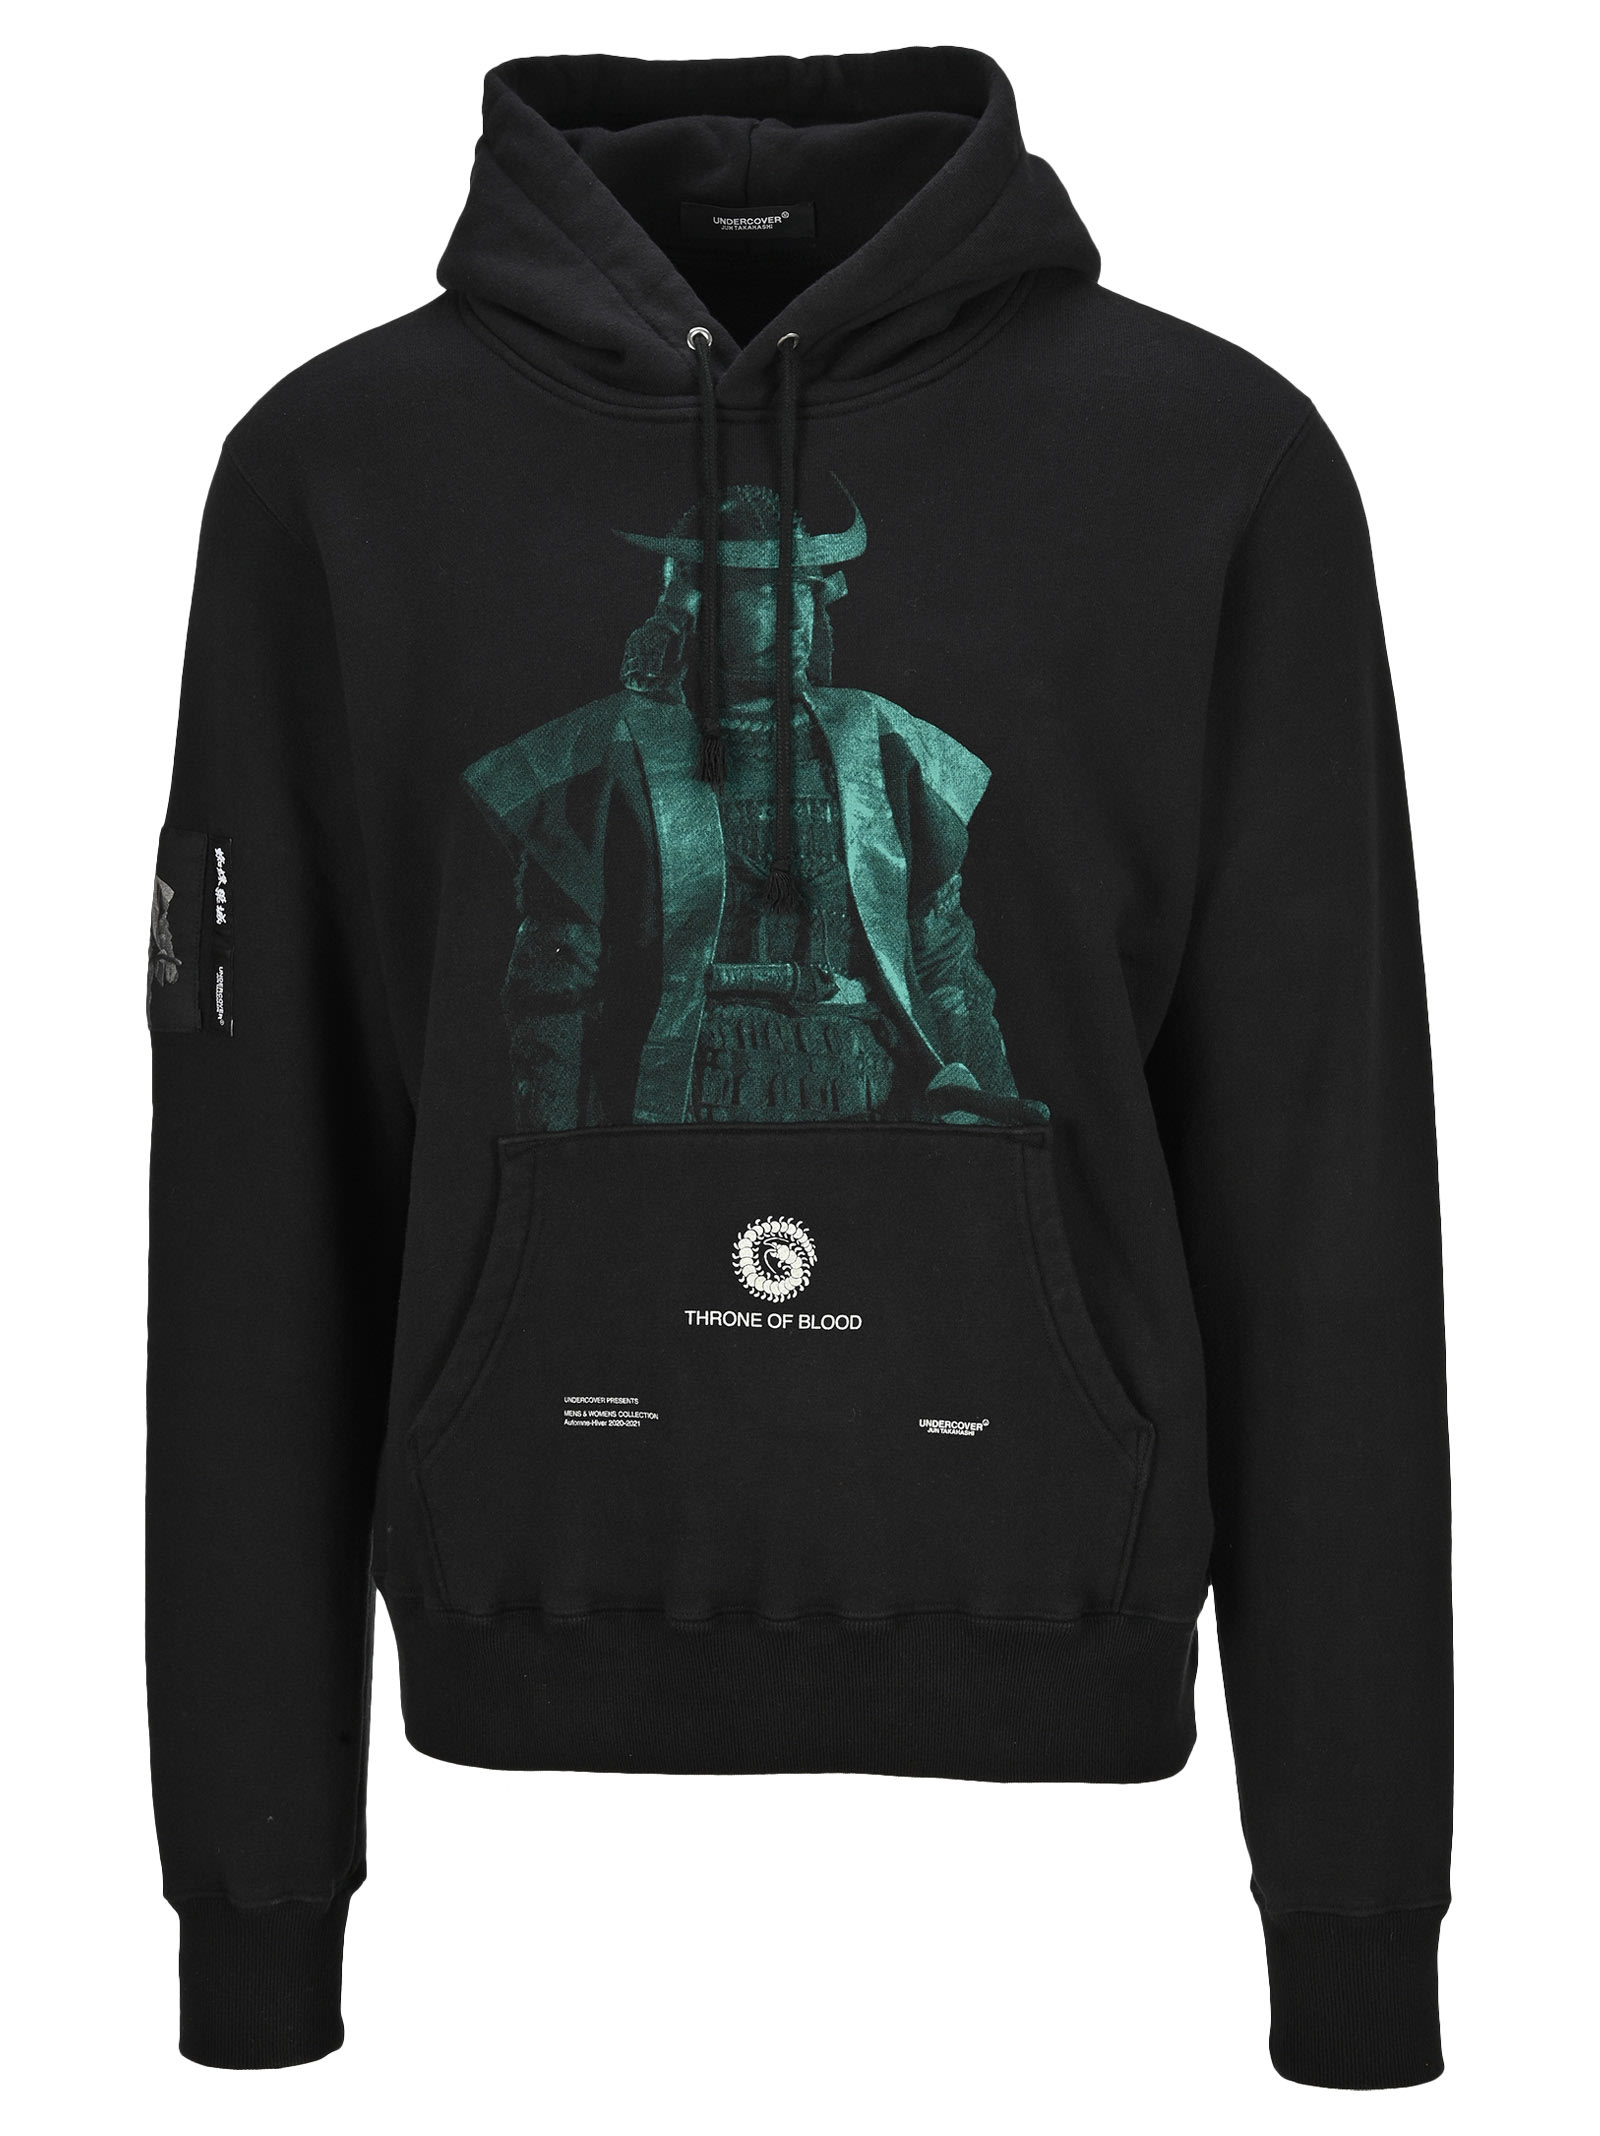 Undercover UNDERCOVER THRONE OF BLOOD HOODIE